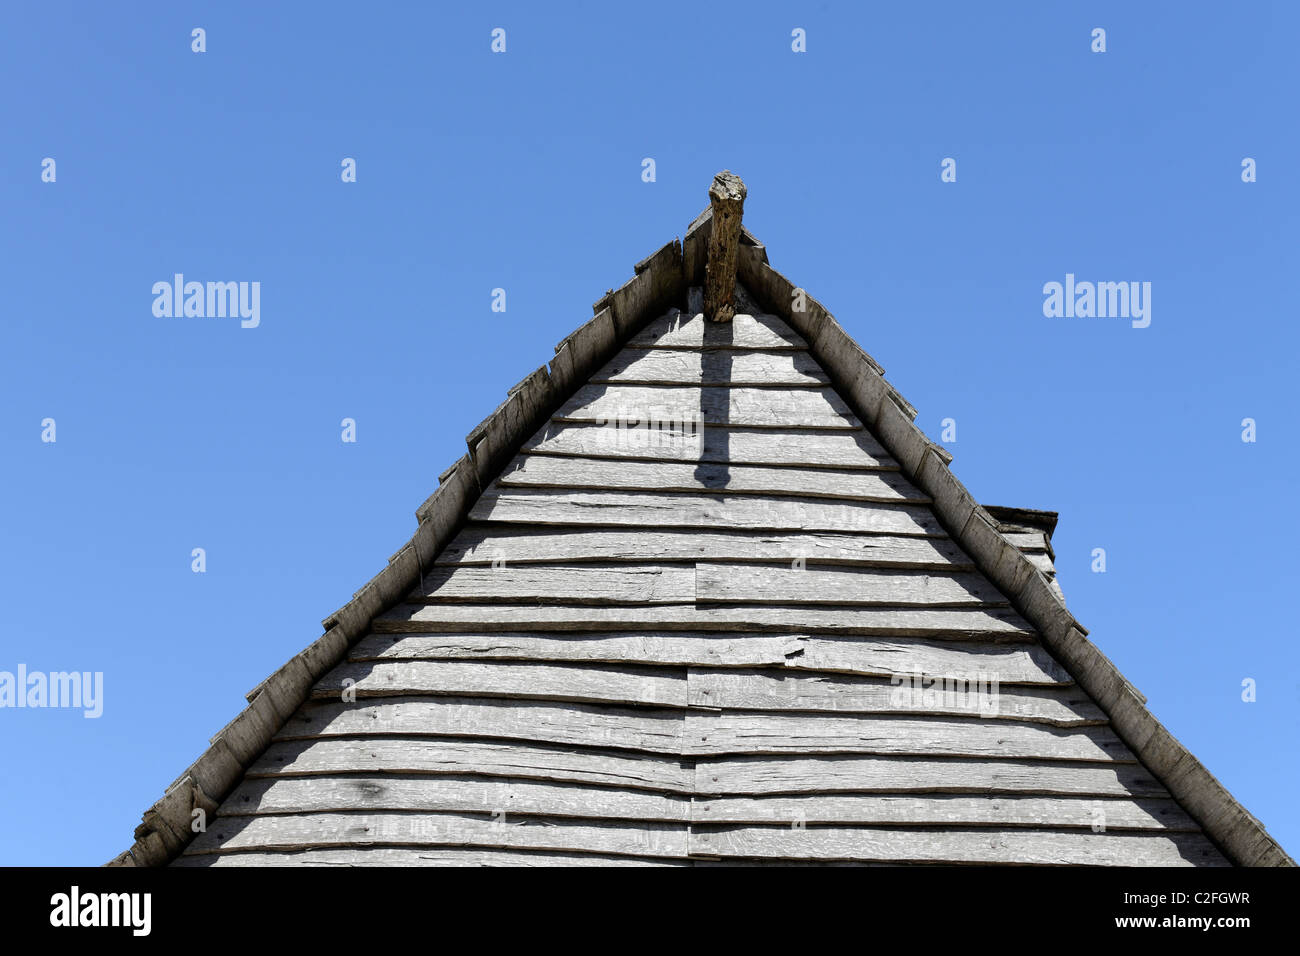 Plimouth Plantation. Recreated colonial pilgrim village of 1627 Plimouth village. - Stock Image